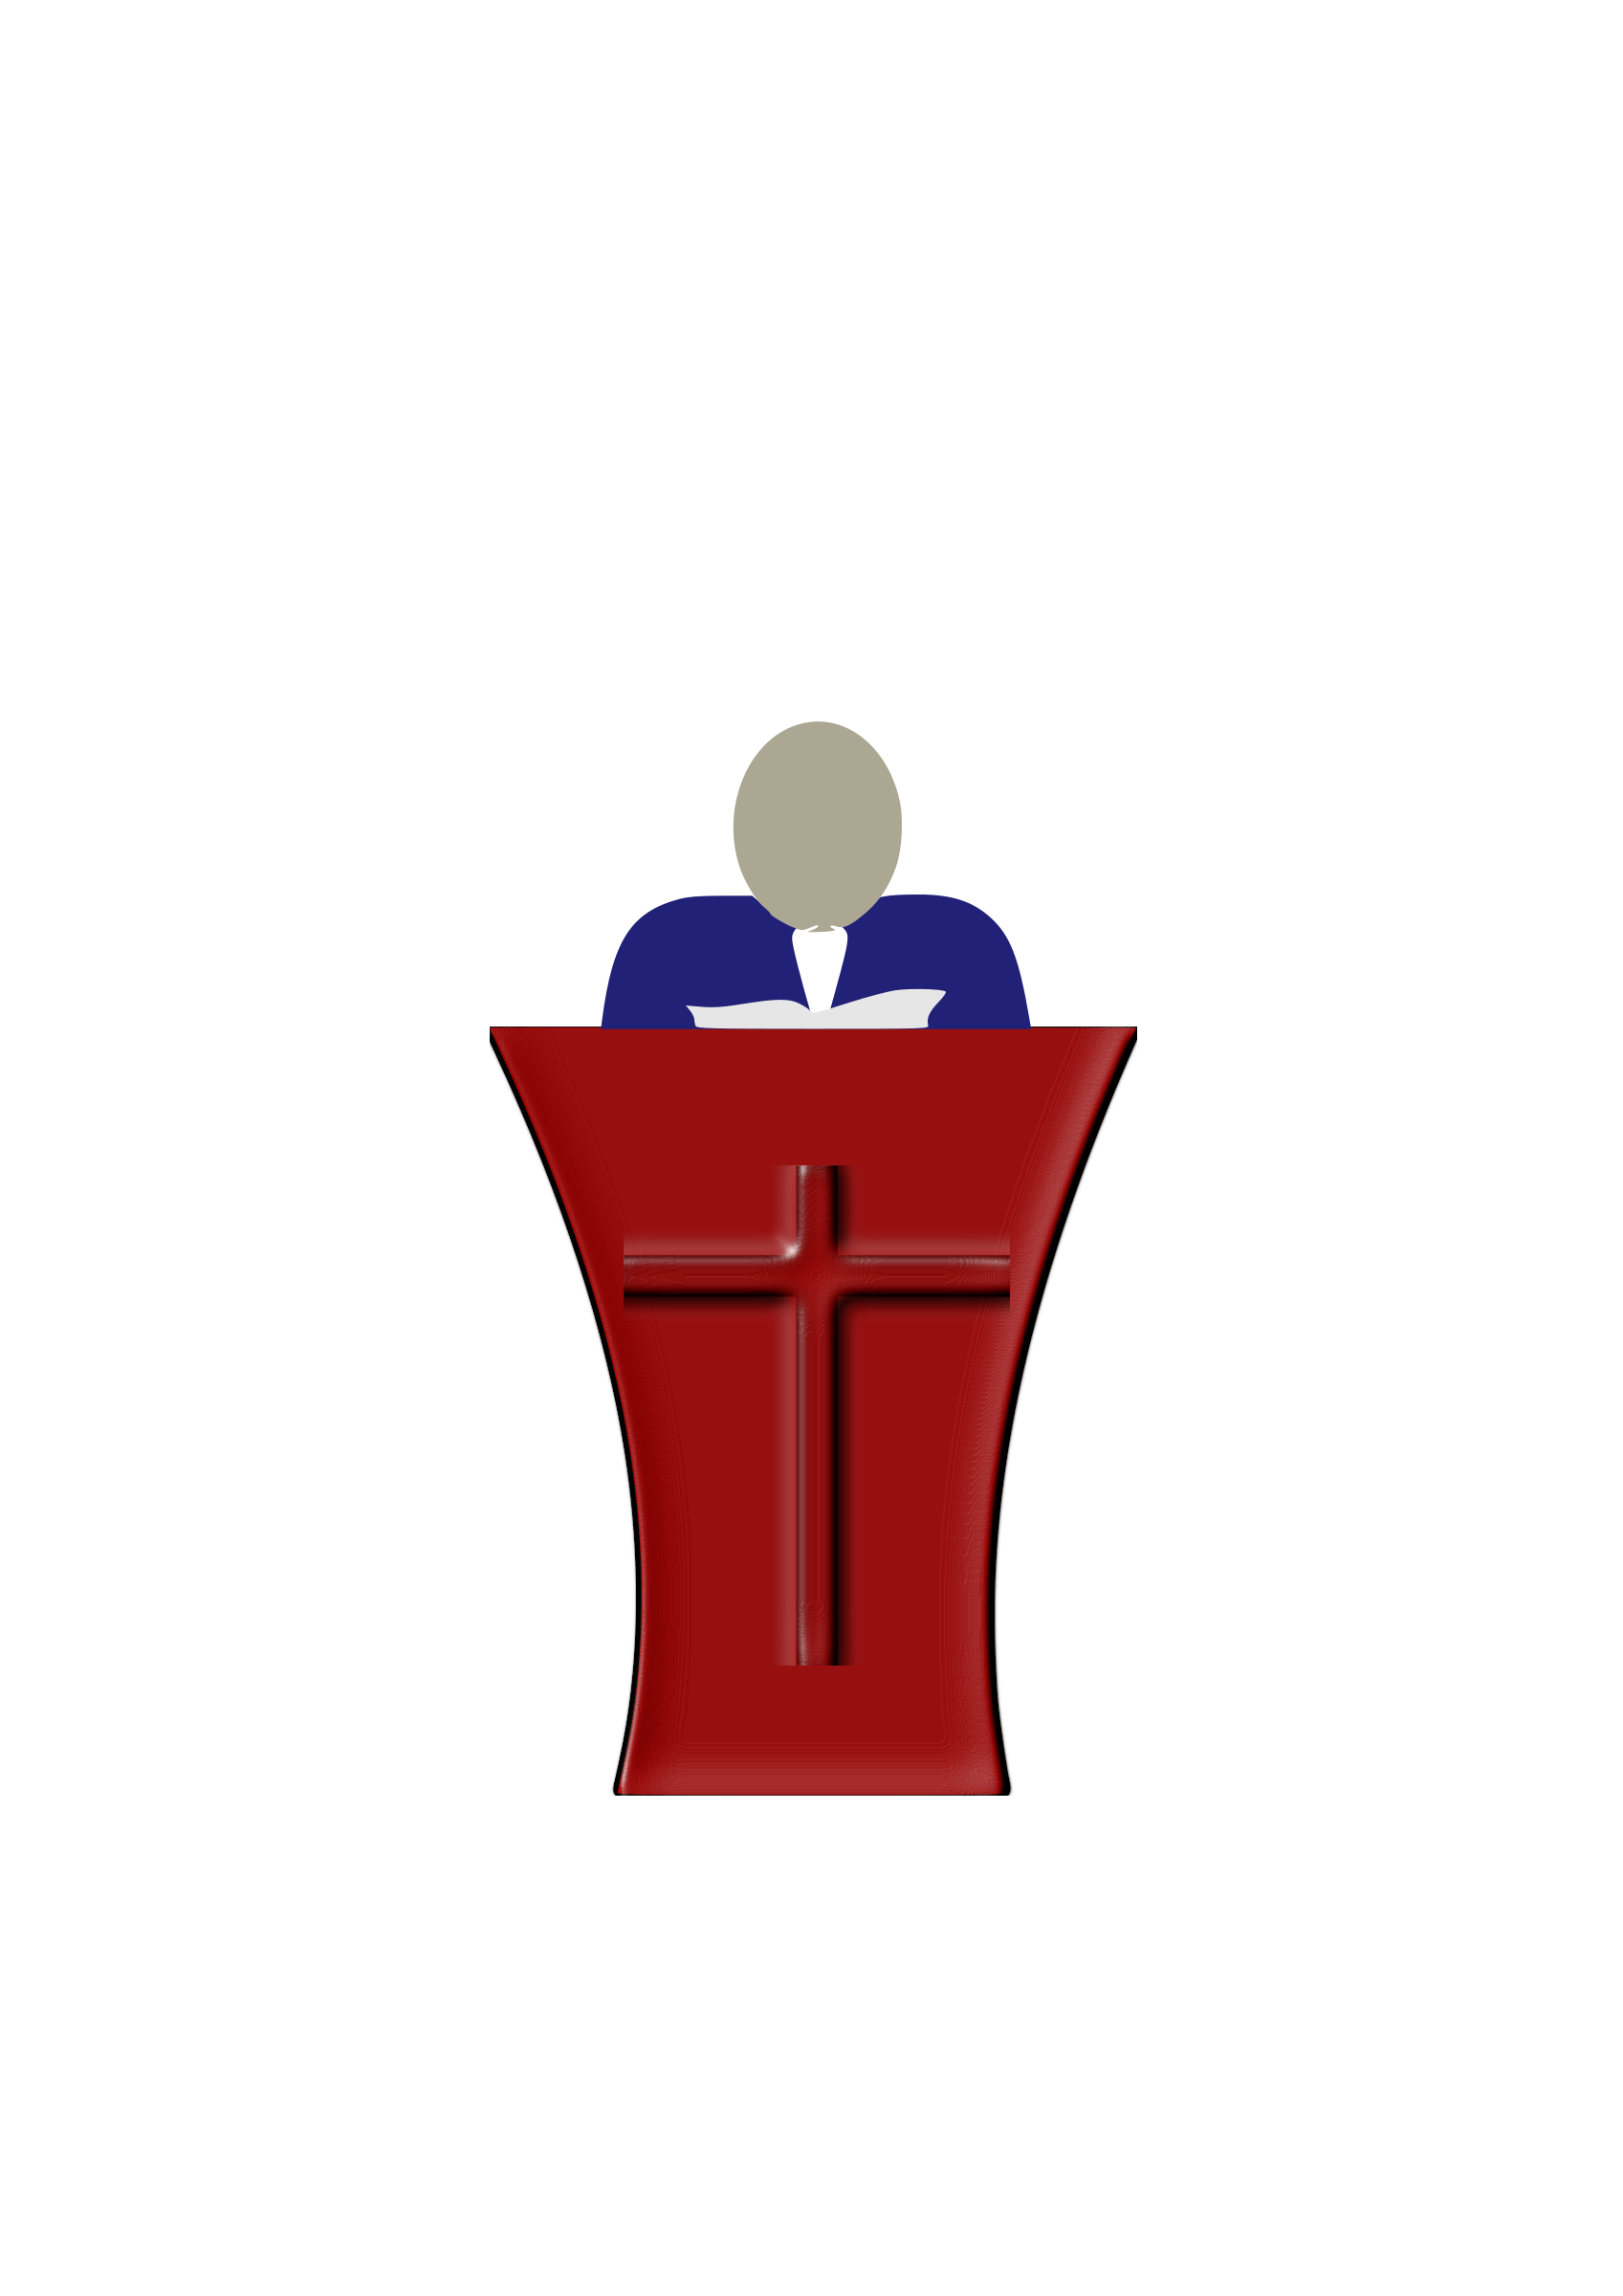 Pastor preaching in church service clipart.